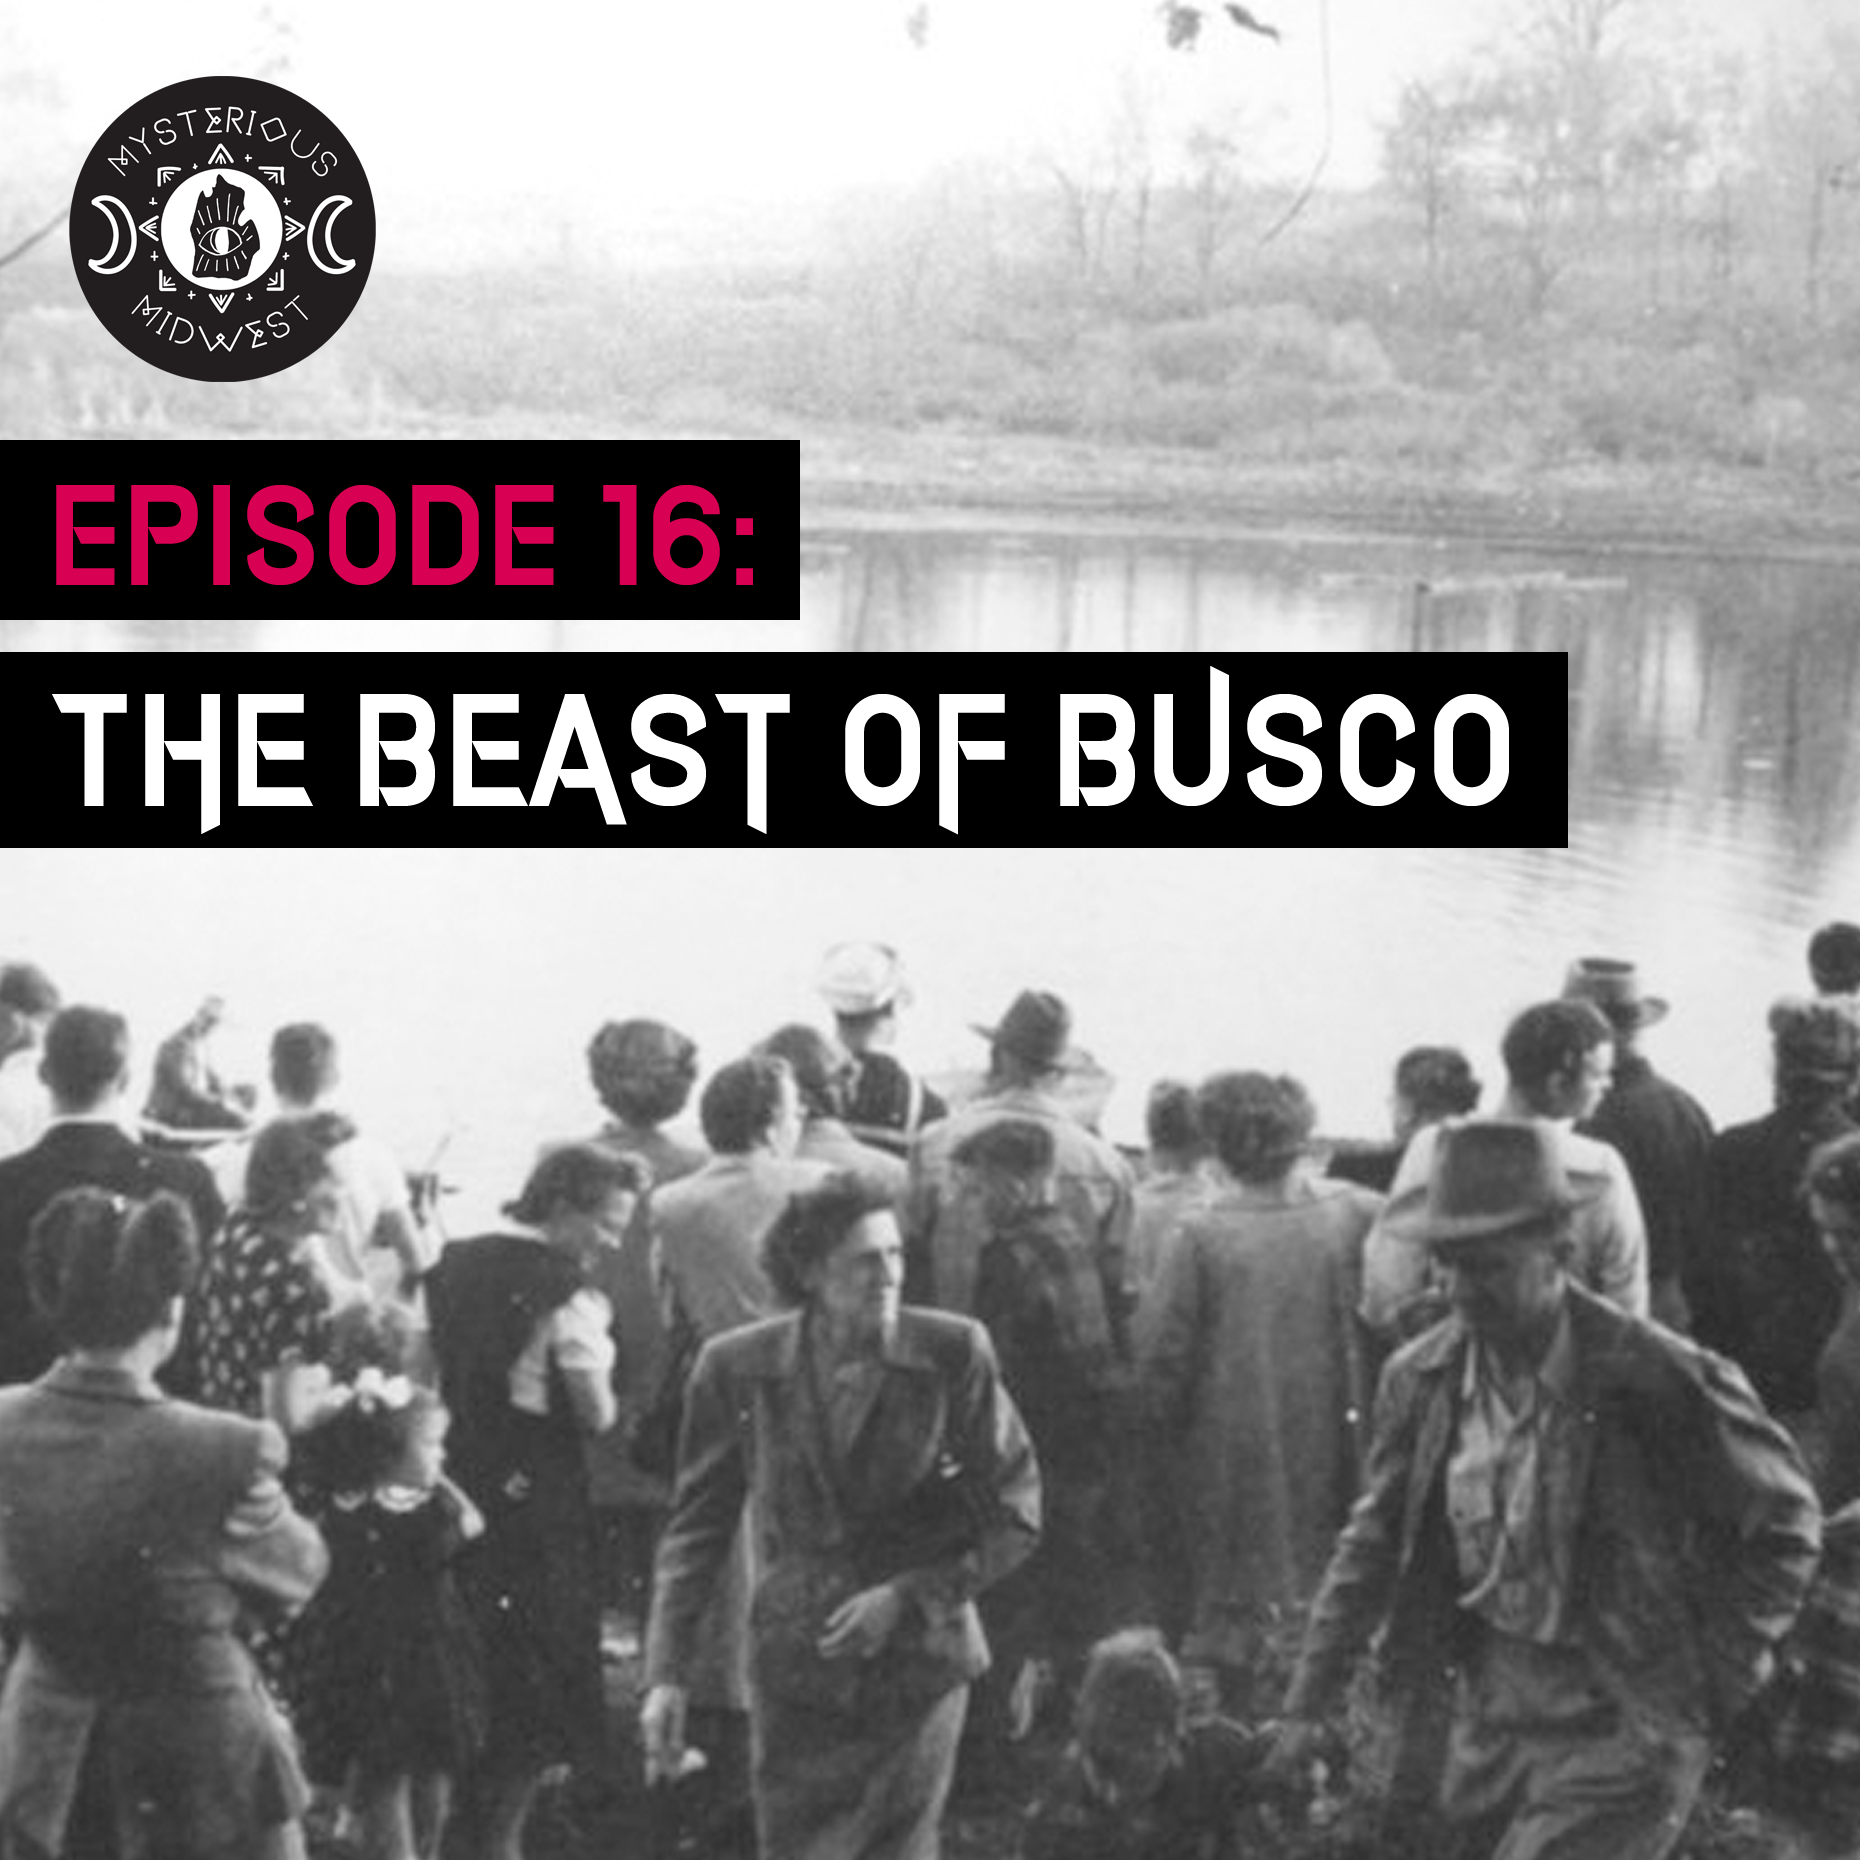 Episode 16: The Beast of Busco